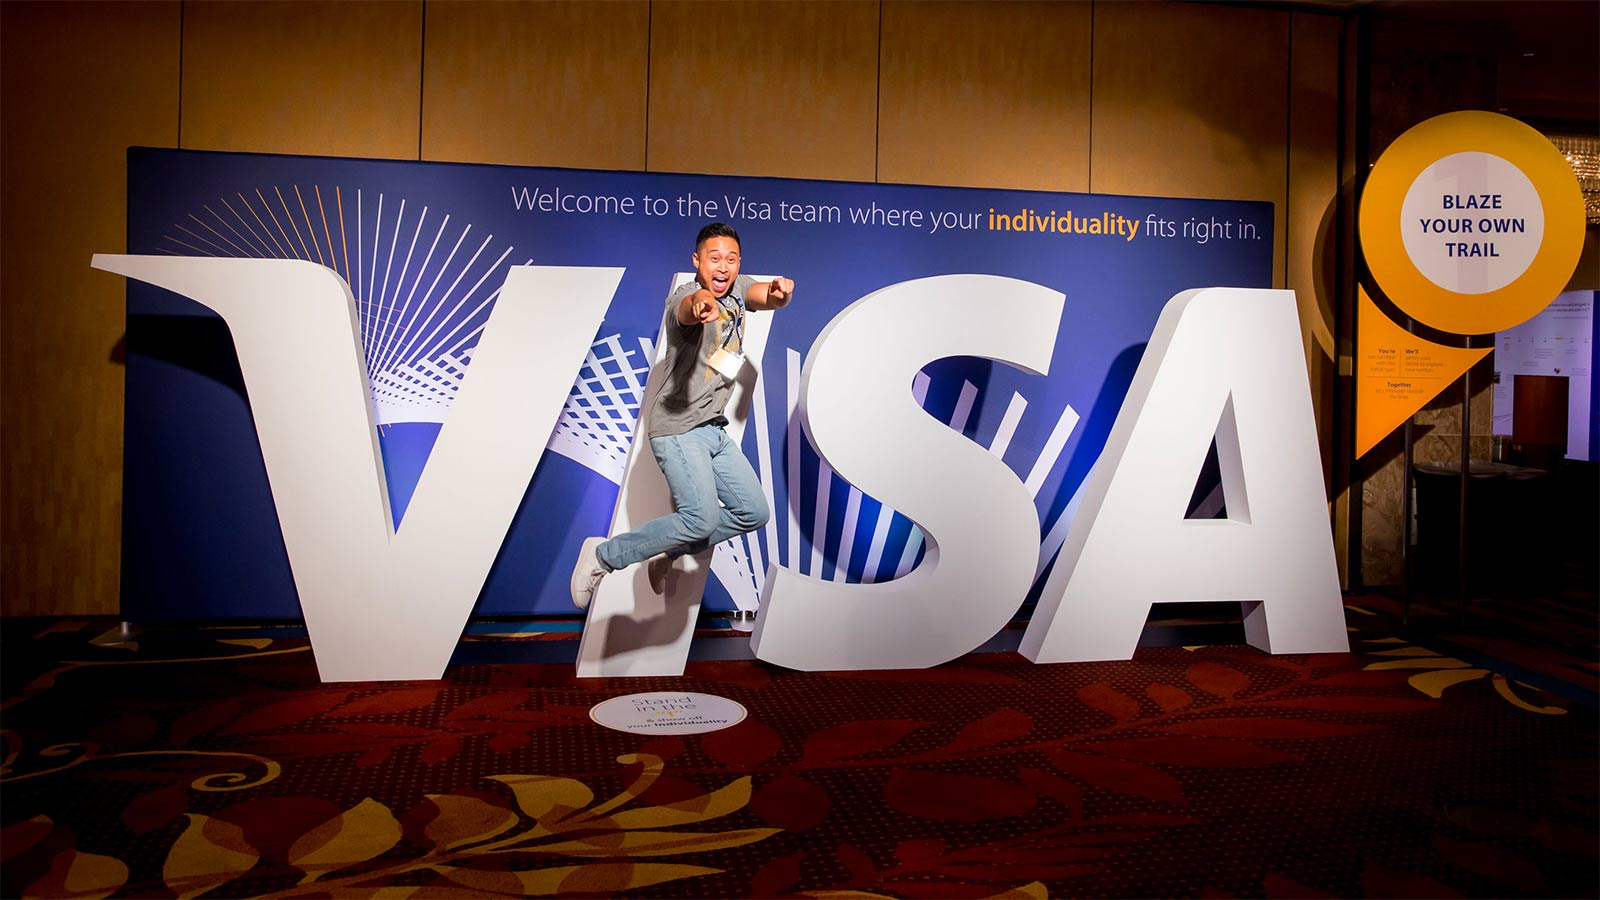 A male intern, in front of a Visa logo, jumps and points to the camera.